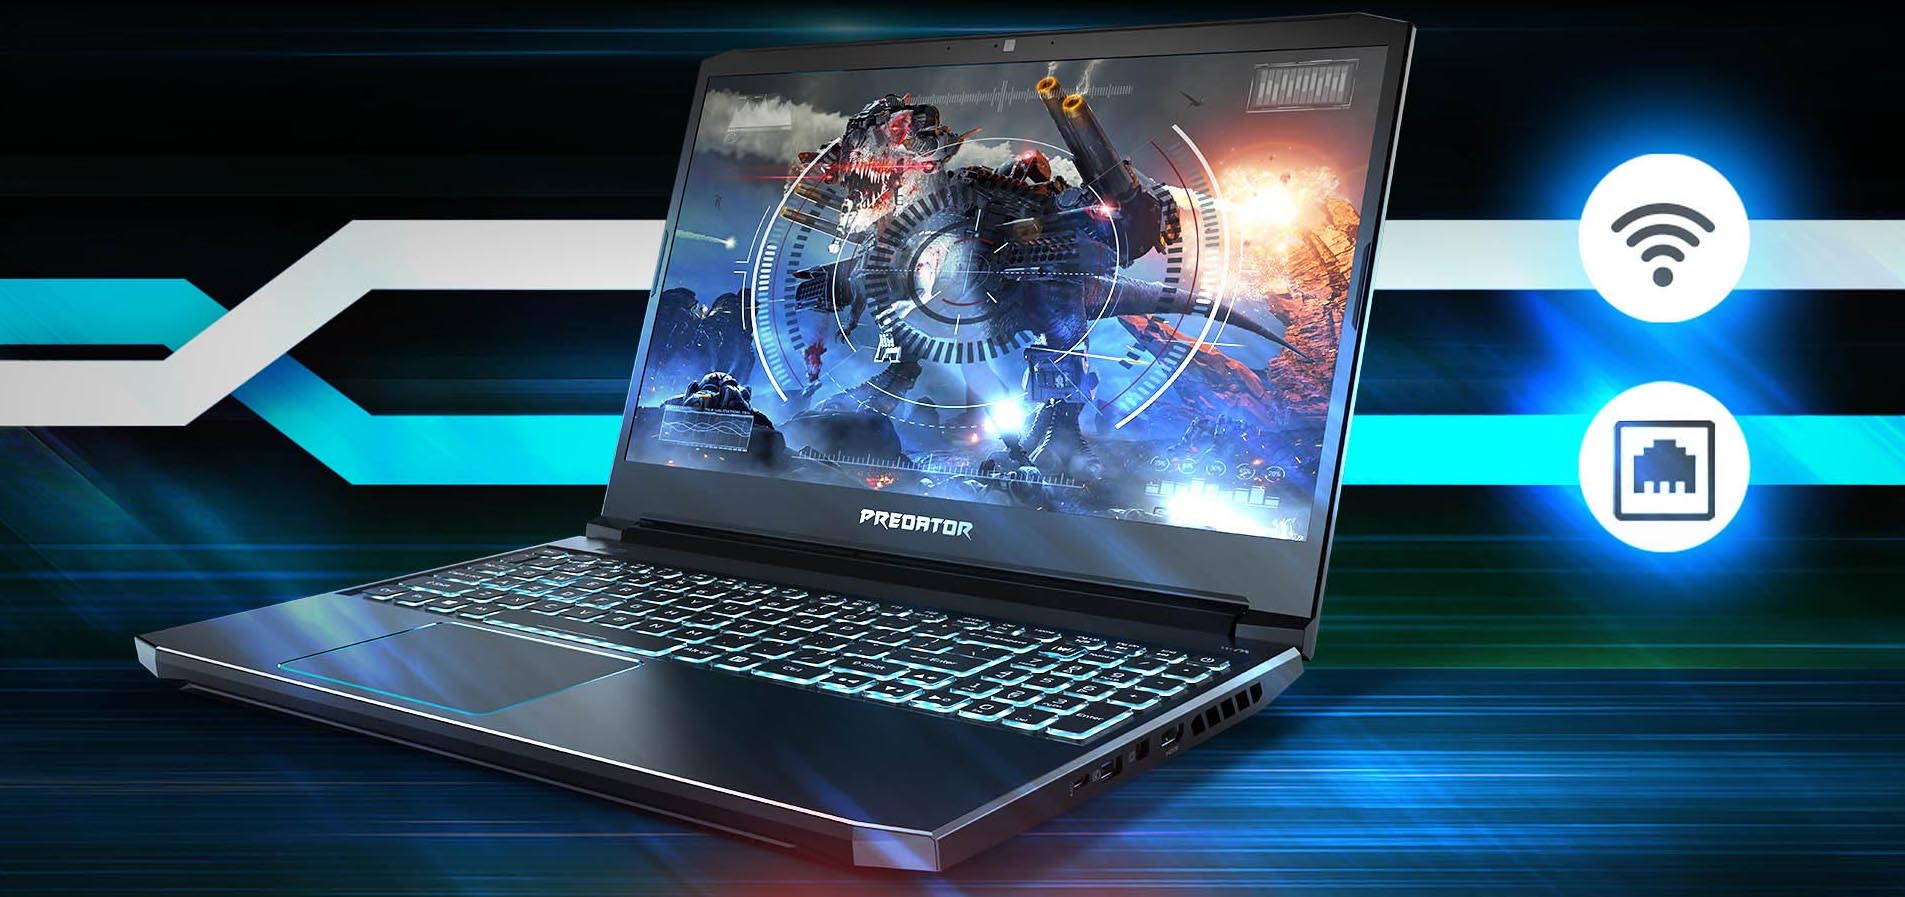 Gaming laptops have dramatically accelerated with screen refresh and frame rate